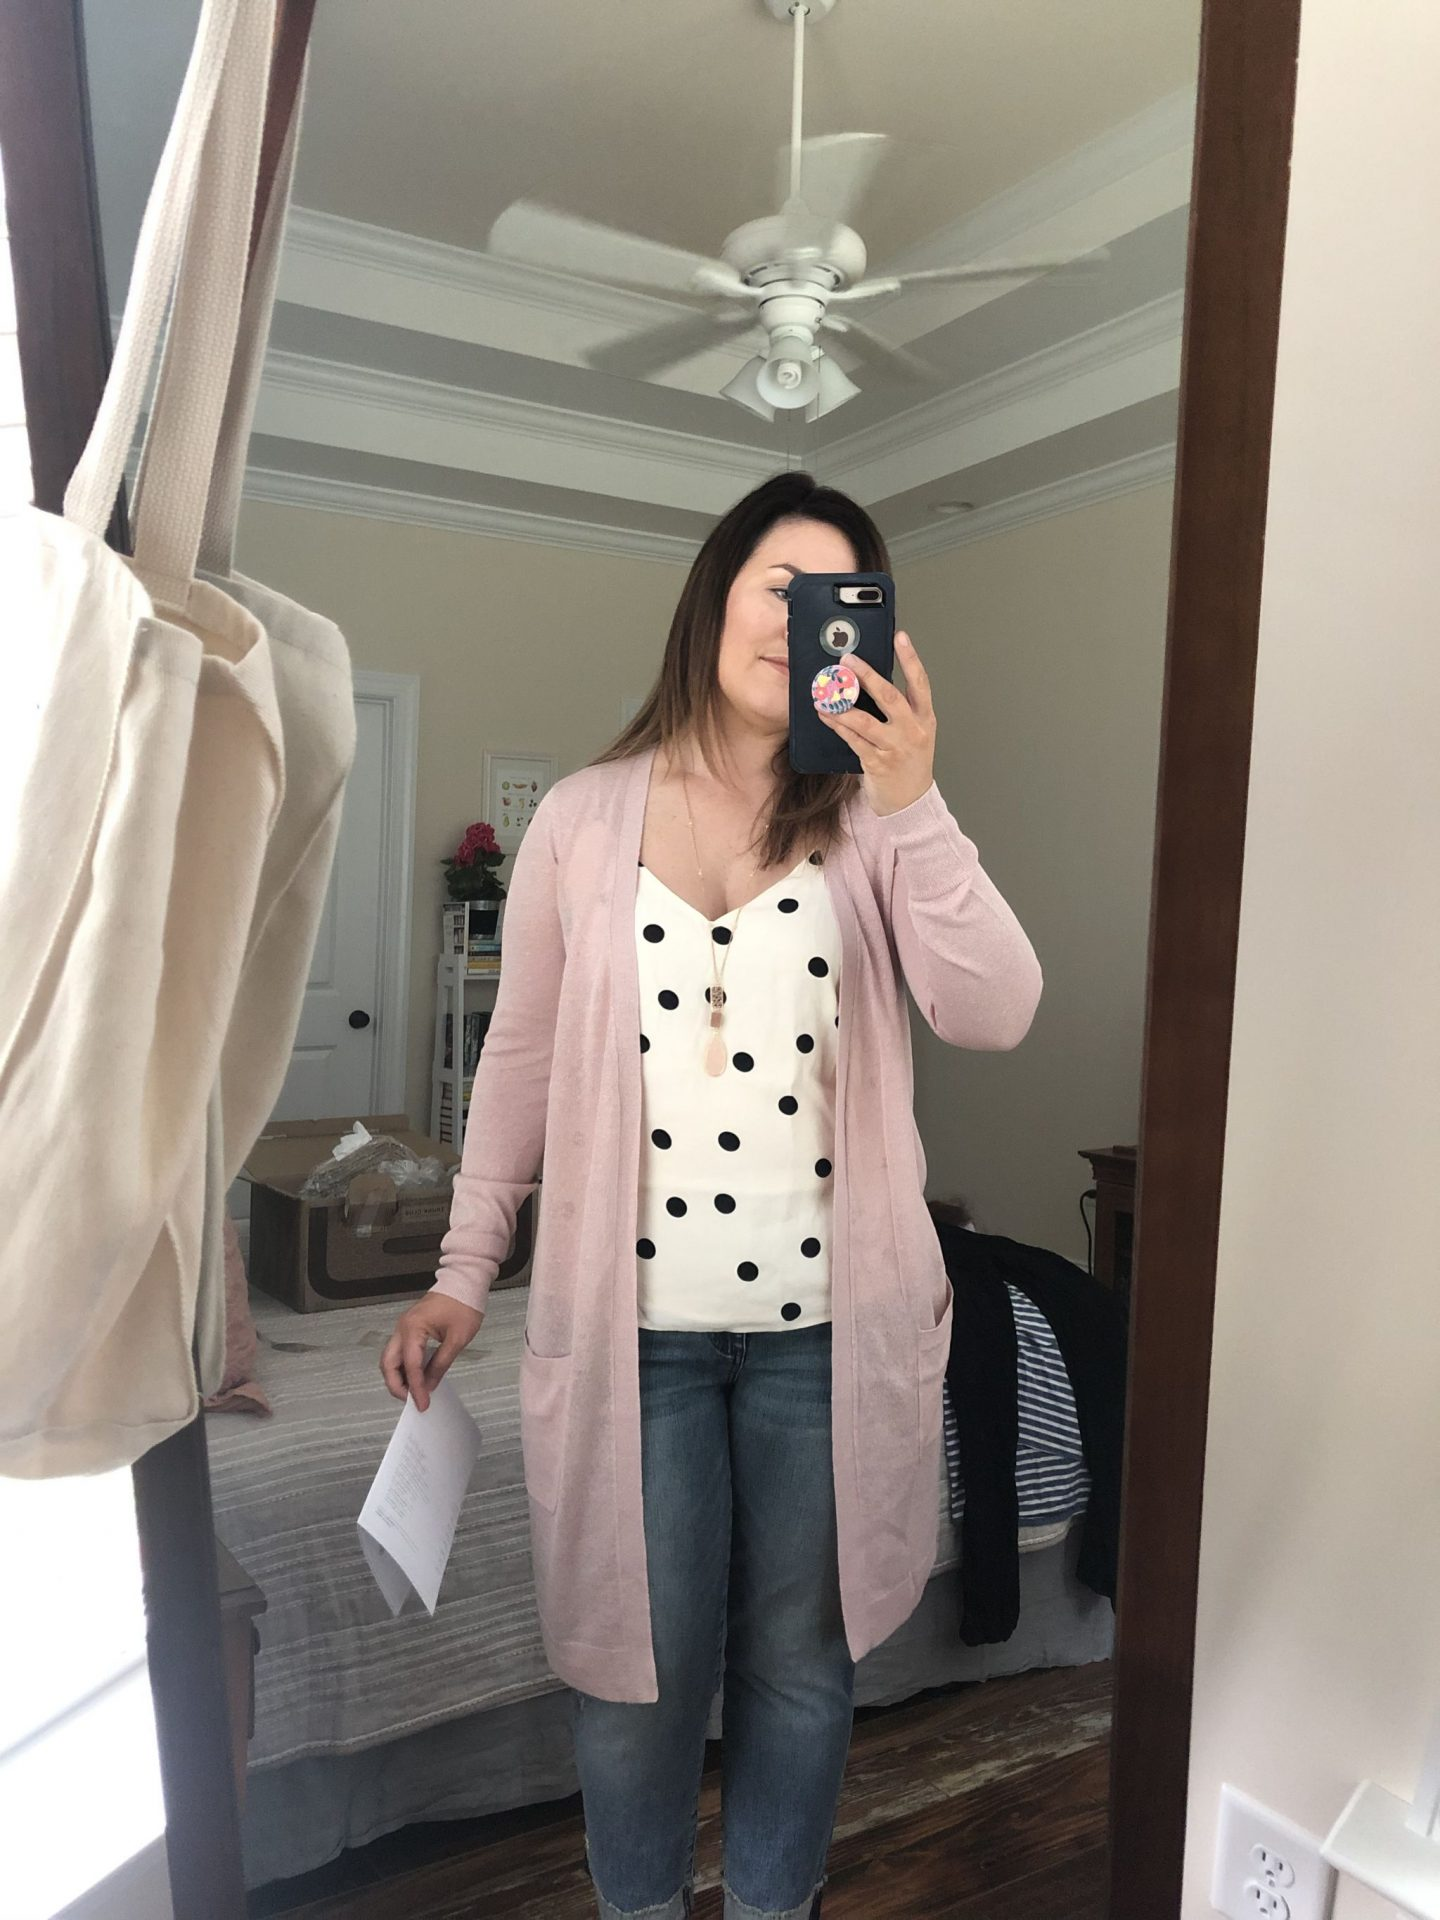 NC blogger Rebecca Lately shares her last summer Trunk Club review. She requested an affordable box of summer clothes. See what she got here!